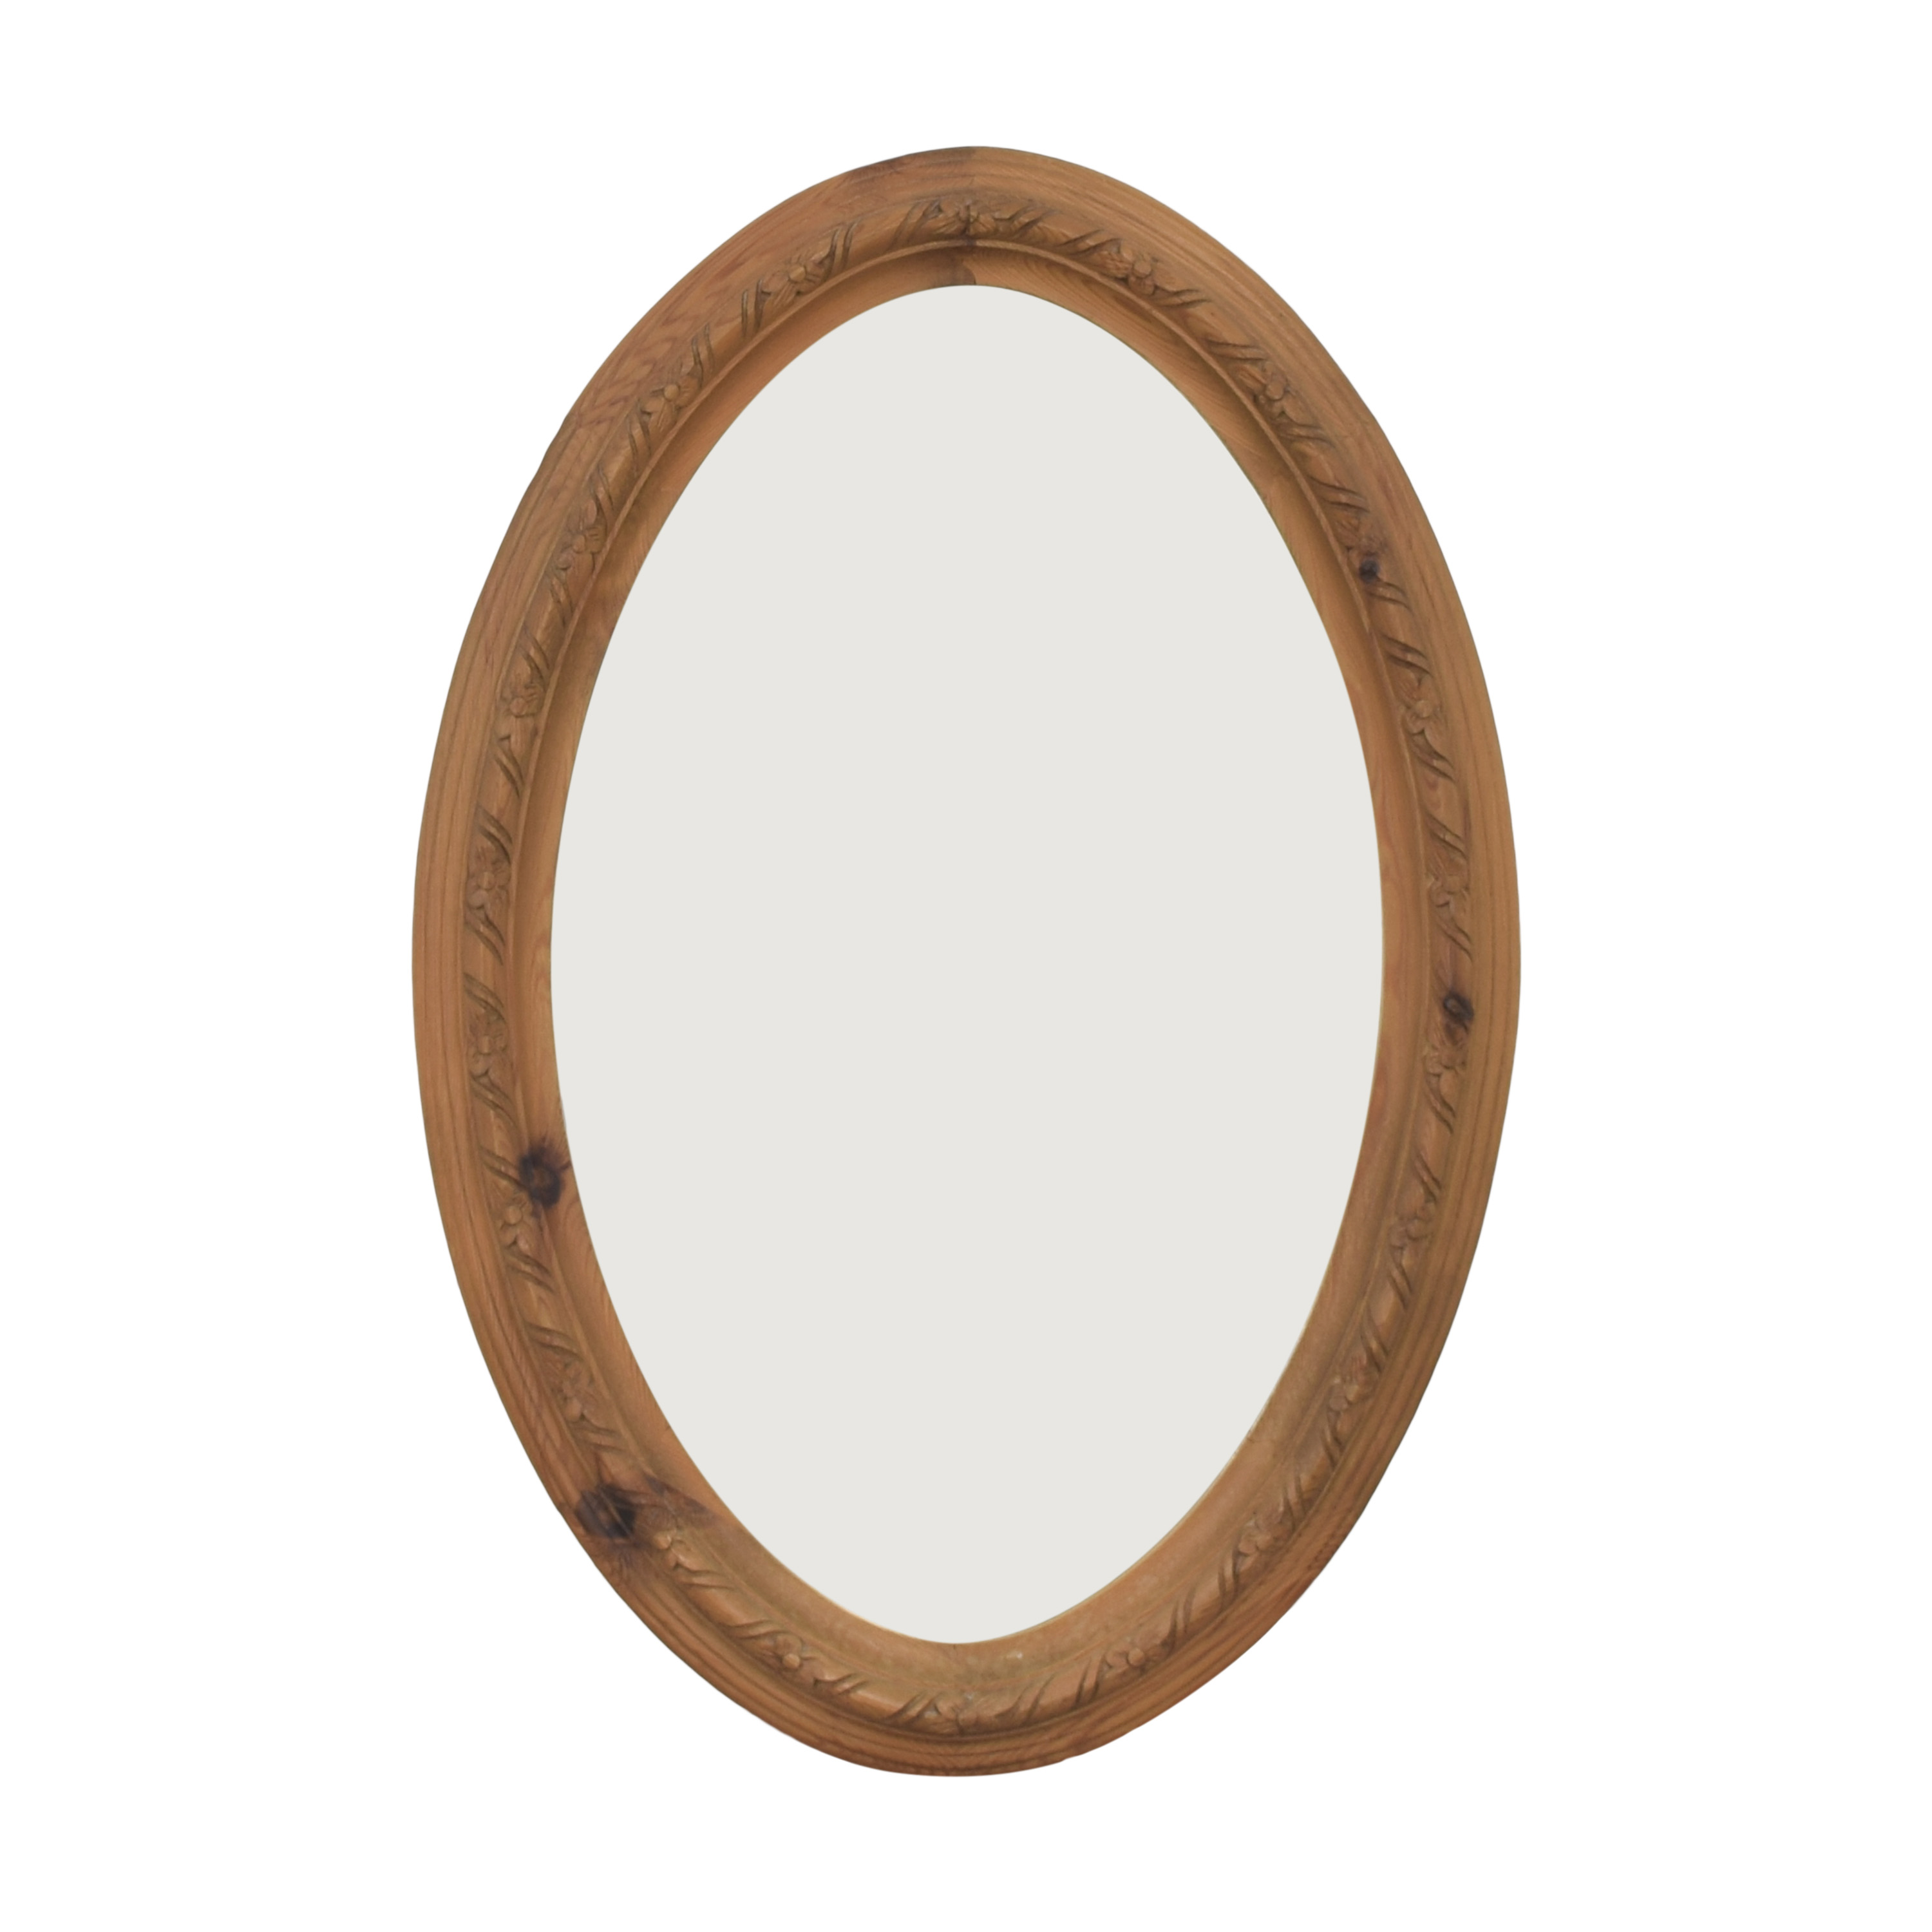 ABC Carpet & Home Oval Decorative Mirror / Decor